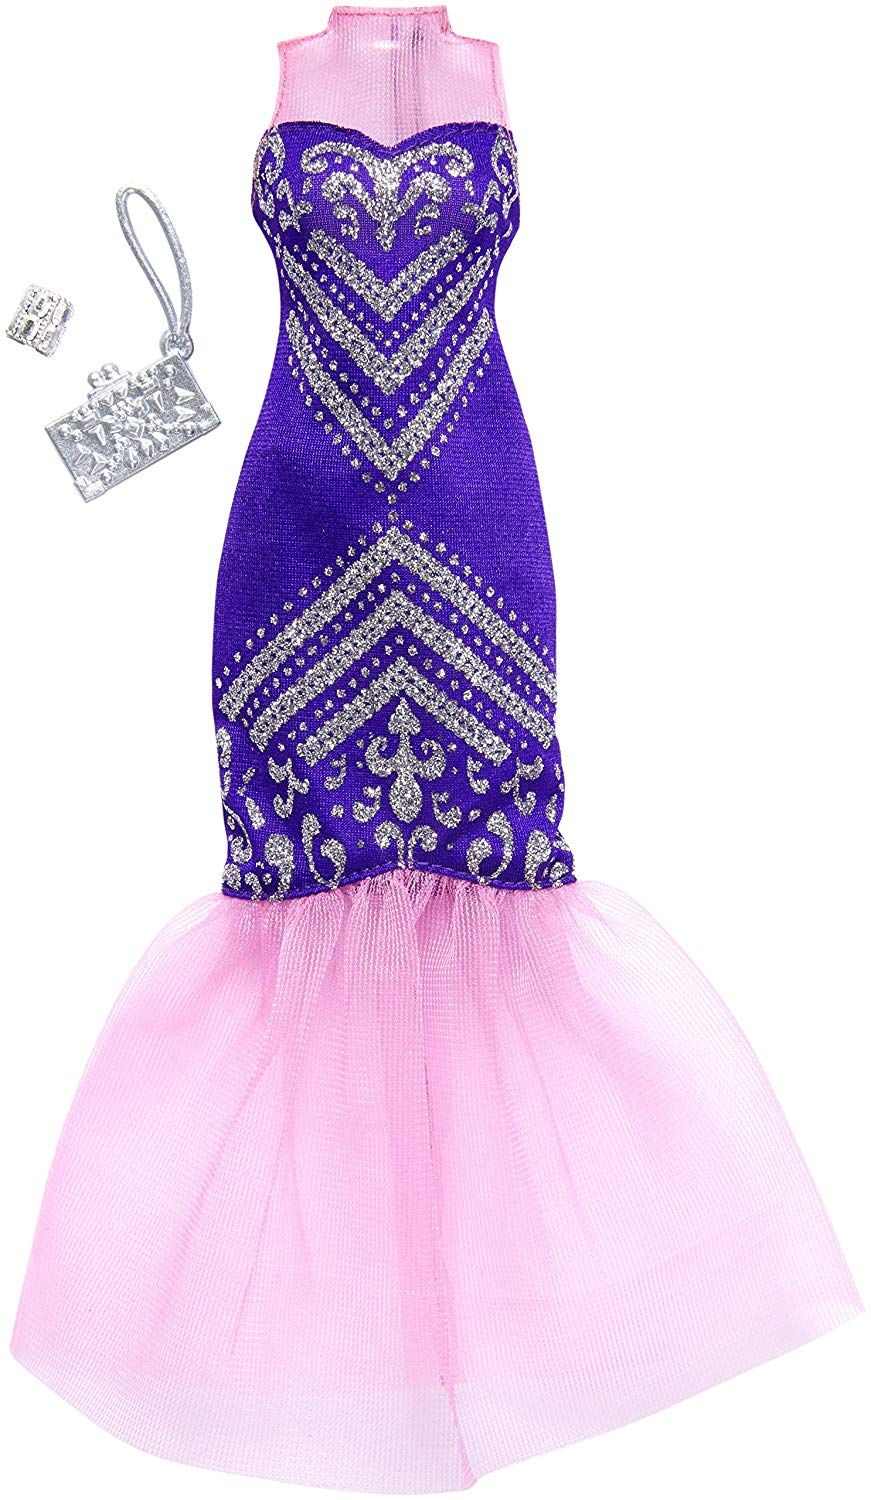 Flawless Stunning One Shouldered Gown in Light Purple Made to Fit Barbie Doll